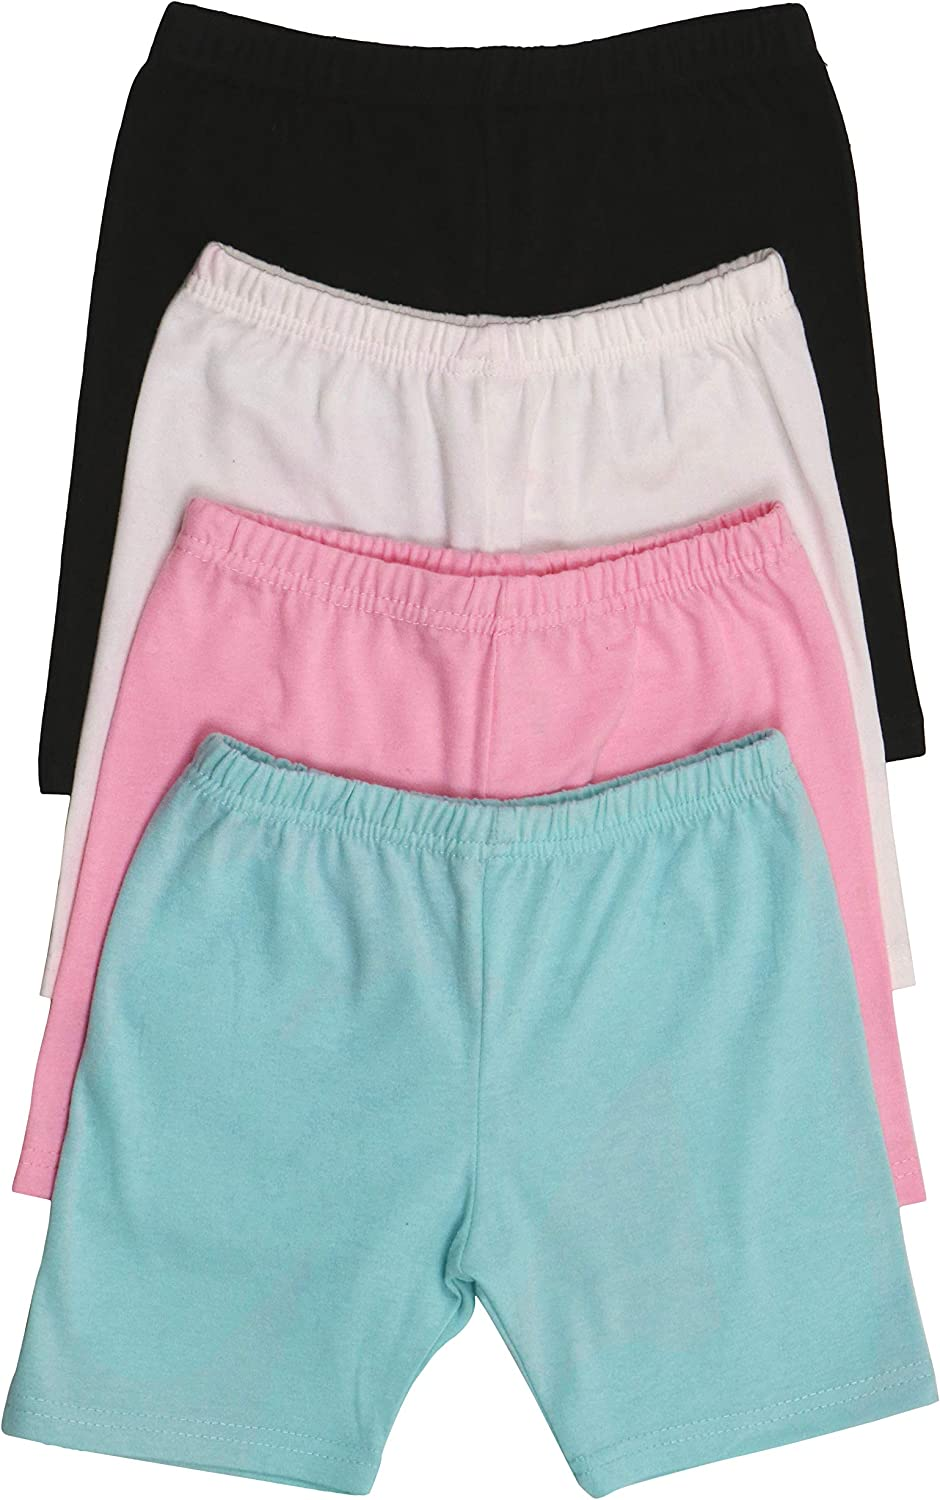 ToBeInStyle Girls 4 Pack Solid Color Soft Cotton Blend Stretchy Shorts